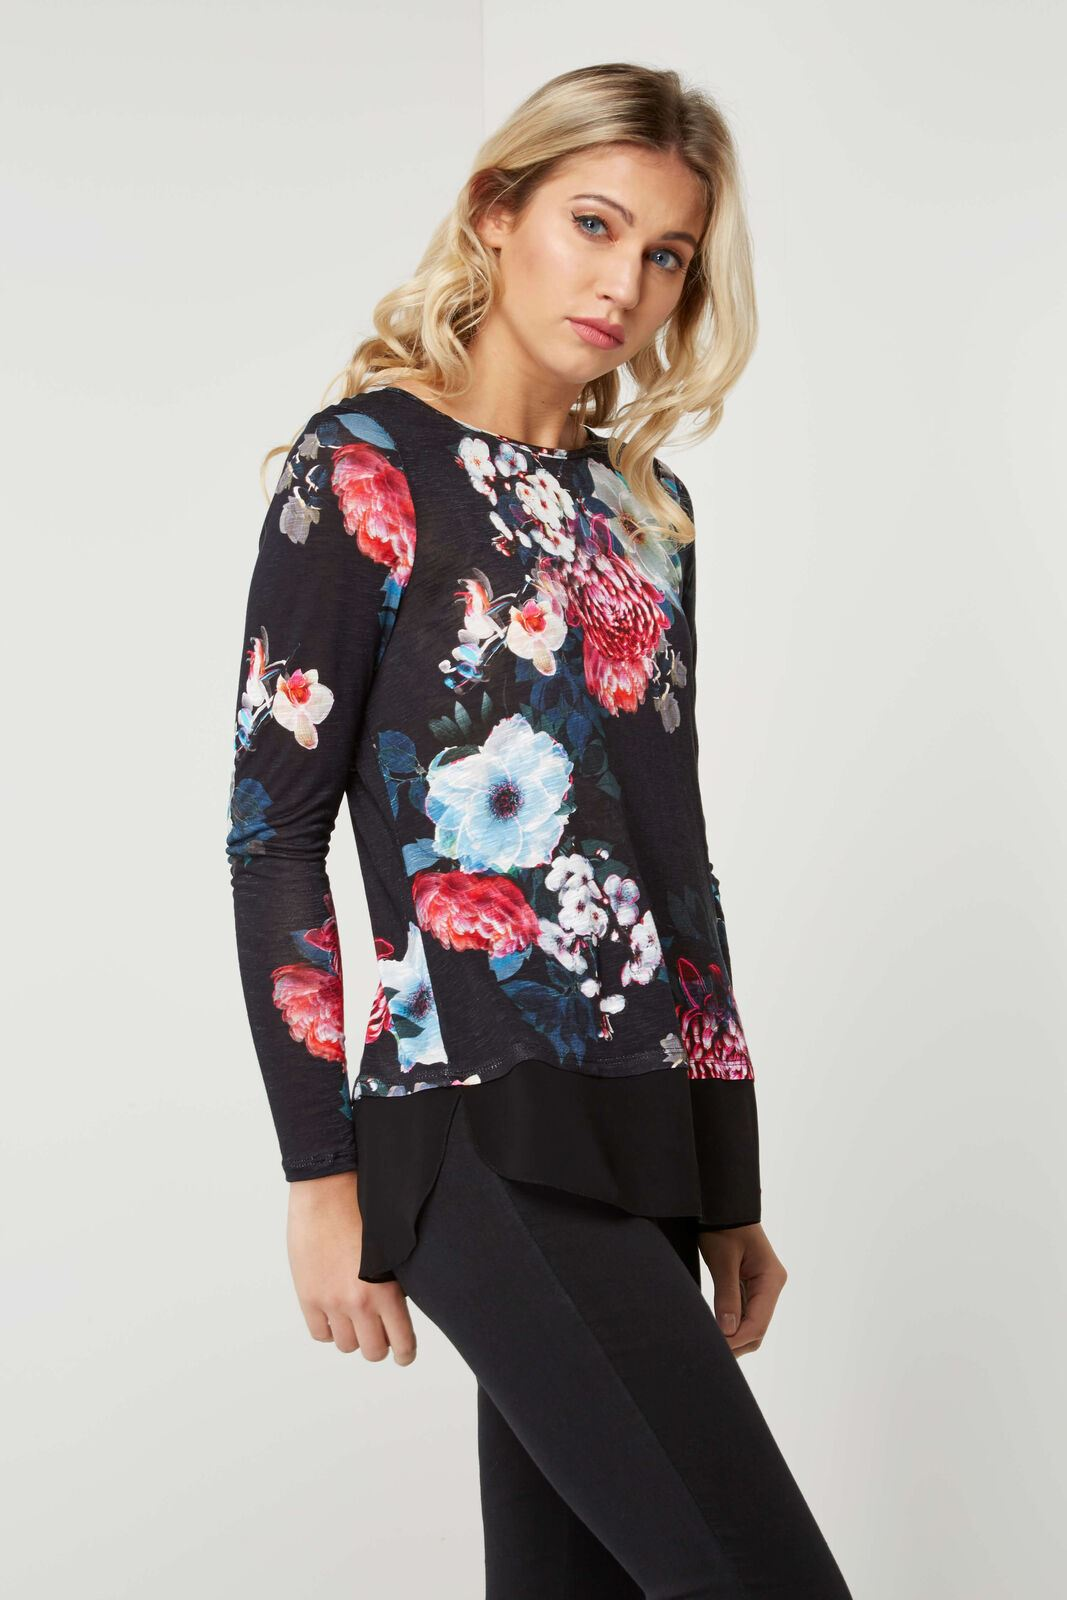 ROMAN-ORIGINALS-Black-Floral-Jersey-Top-with-Chiffon-Mock-Layer-RRP-30